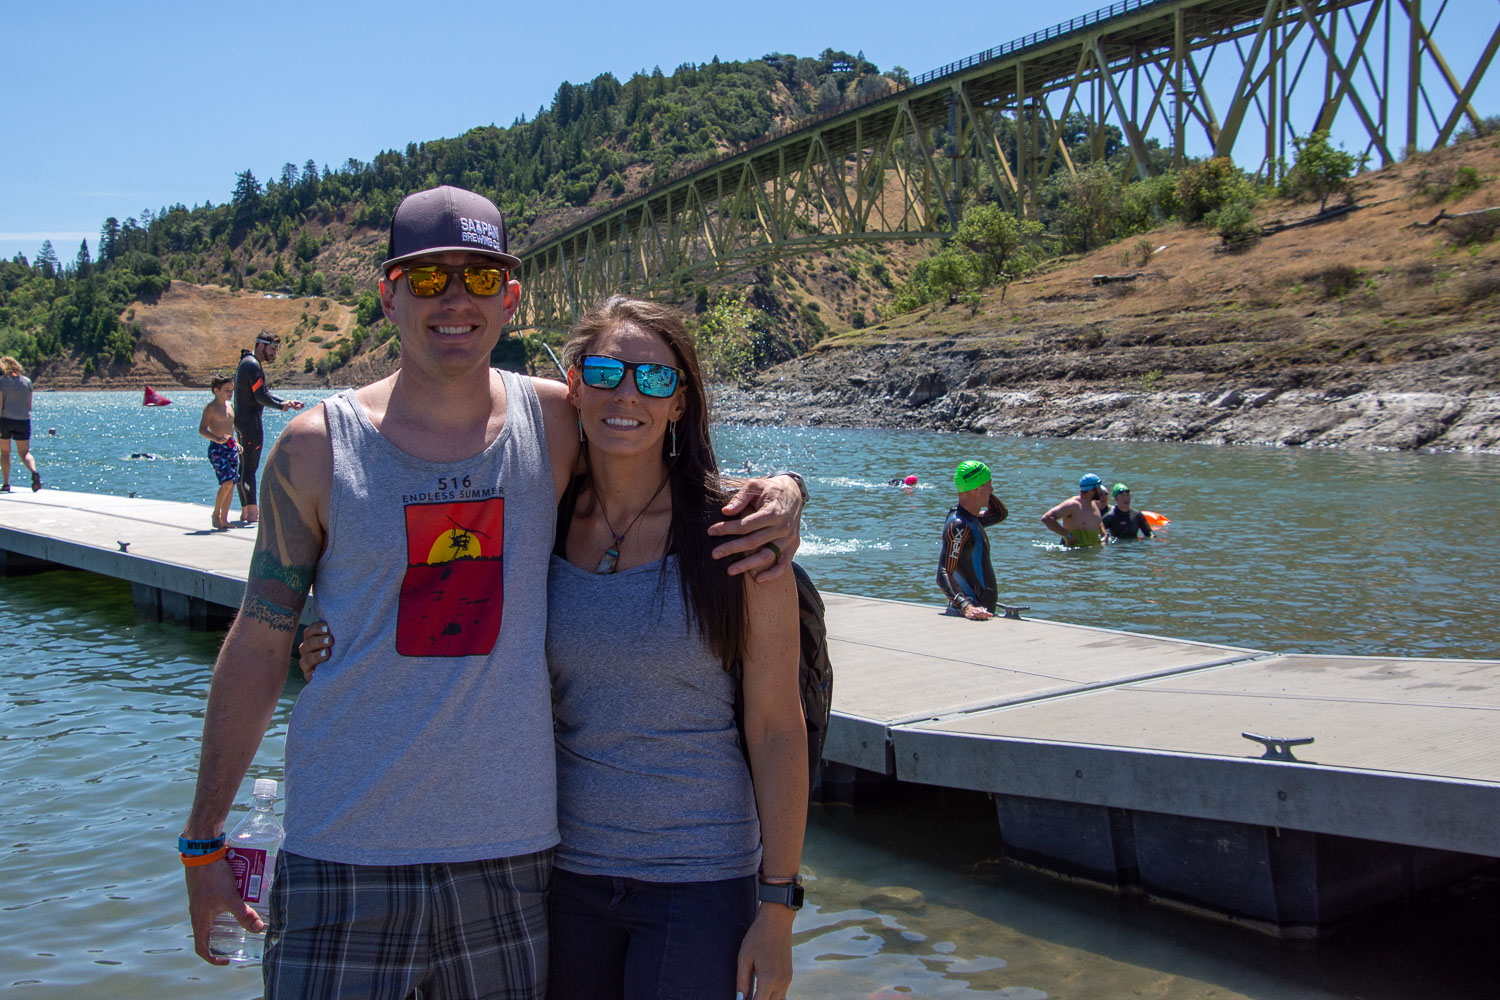 Matt and Kaleena at Lake Sonoma.